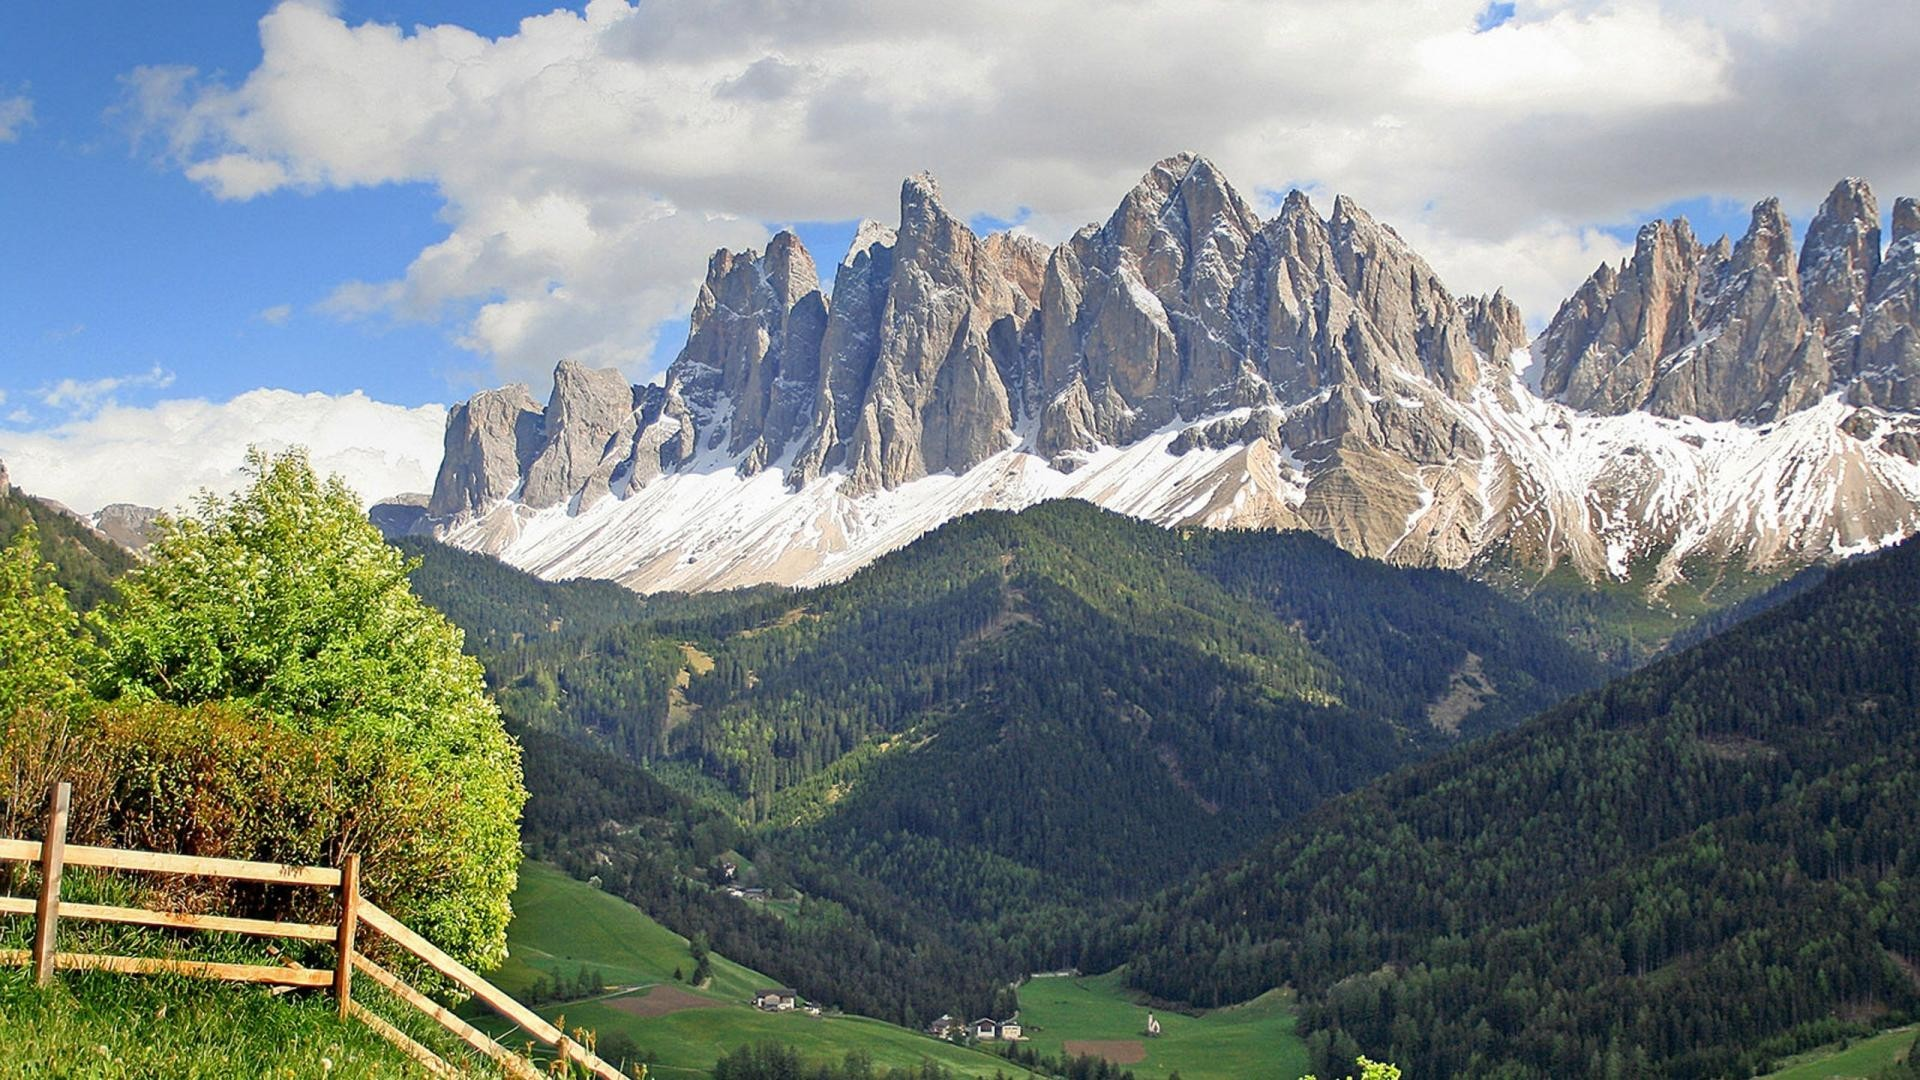 Italian Tag – Dolomites Landscape Alps Italian Village Europe Mountain  Magnificent Valley Travel Forest Range Italy